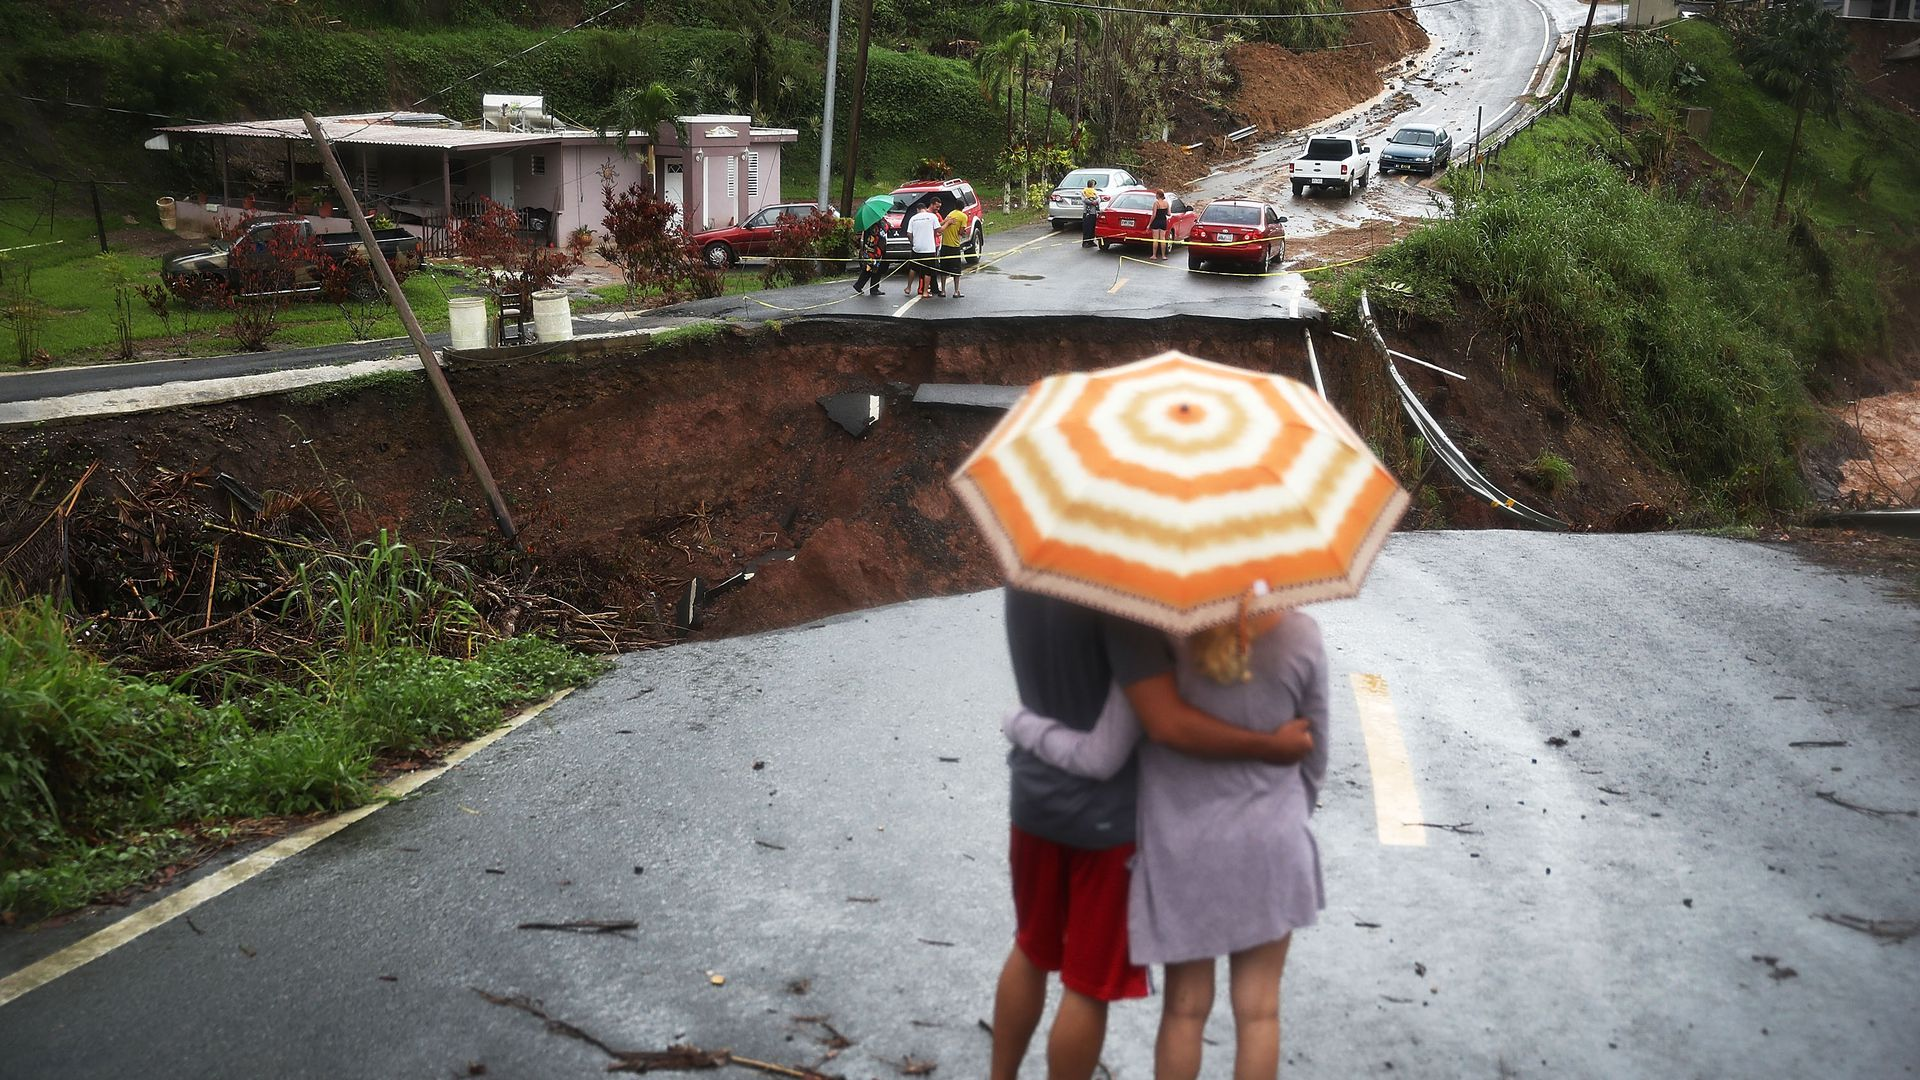 People look on at a section of a road that collapsed in Barranquitas, Puerto Rico after Hurricane Maria swept through the island in 2017.